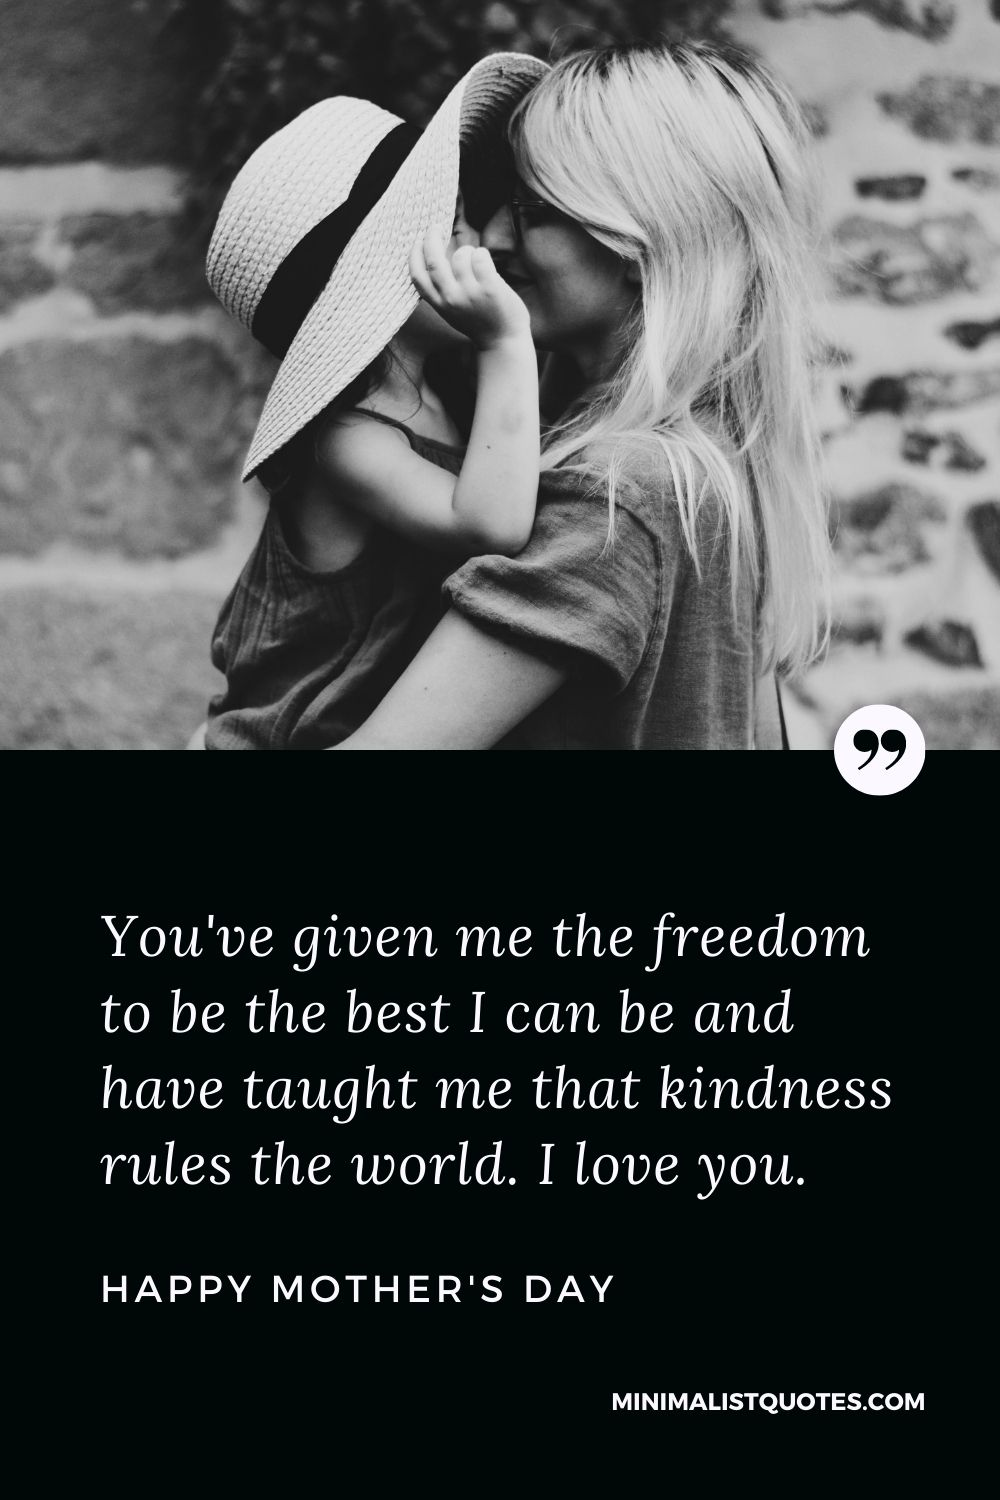 Mother's Day wish, message & quote with HD image: You've given me the freedom to be the best I can be and have taught me that kindness rules the world. I love you. Happy Mother's Day!